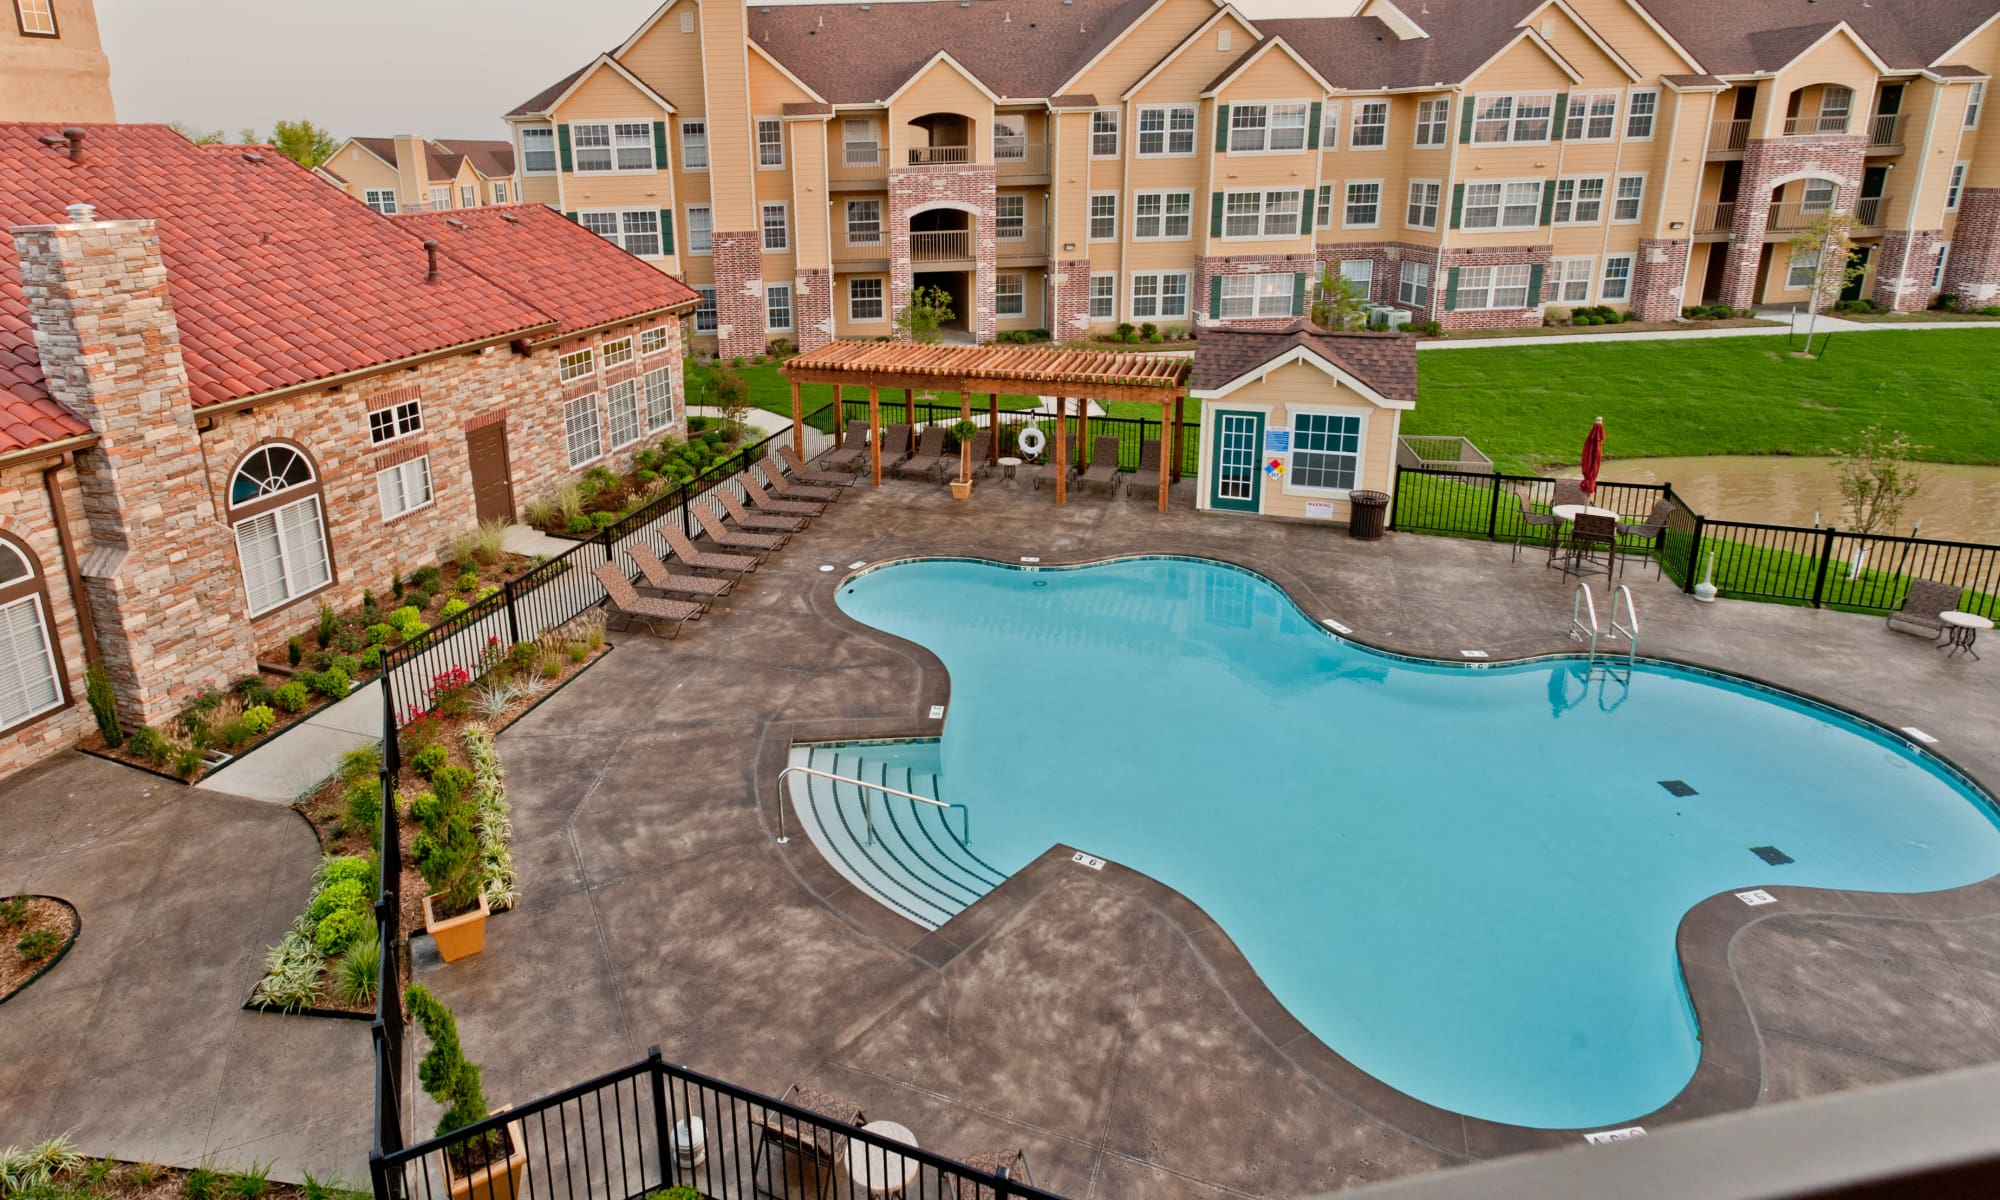 Apartments at Park at Mission Hills in Broken Arrow, Oklahoma